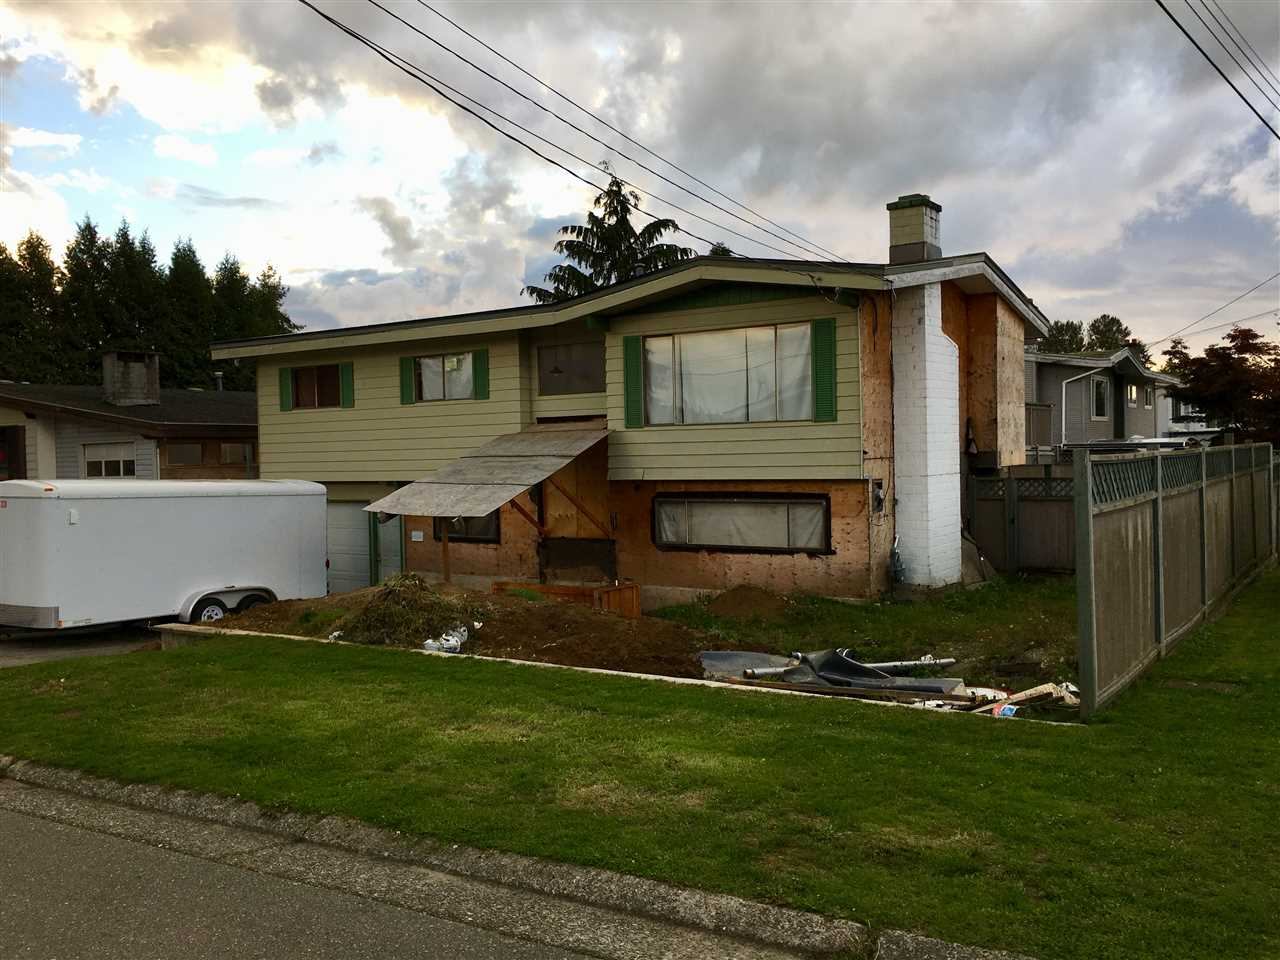 Main Photo: 7465 LARK Street in Mission: Mission BC House for sale : MLS®# R2215961